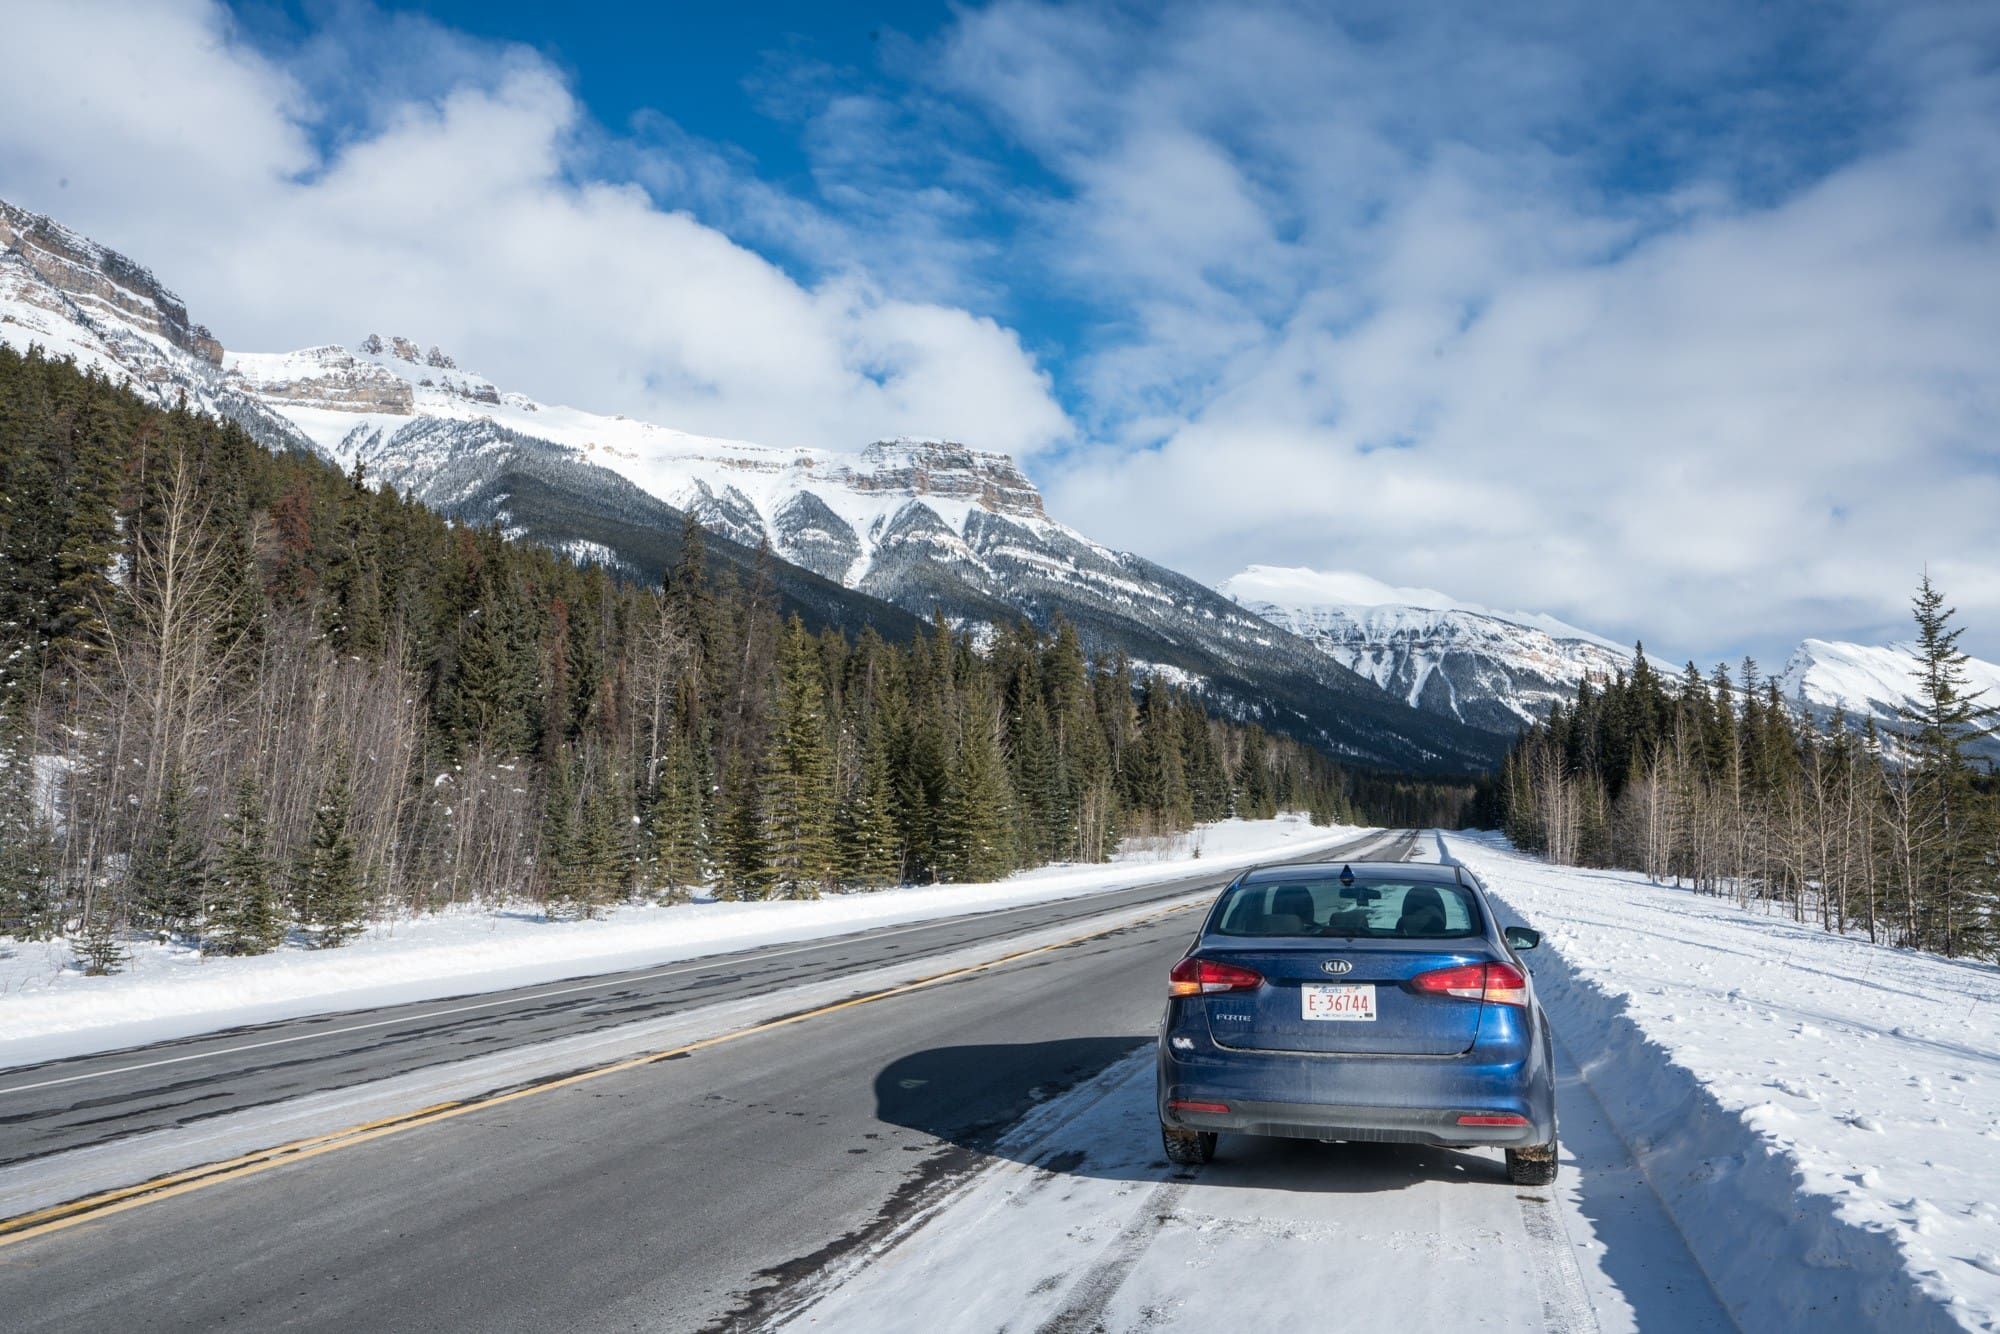 Icefields Parkway // Plan the ultimate winter getaway in the Canadian Rockies. This 4-day Jasper National Park winter itinerary gives you an adventurous day-by-day plan, including skiing at Marmot Basin, dog sledding, fat biking, the Maligne Canyon Icewalk, plus info on how to get to Jasper, the best restaurants & where to stay.